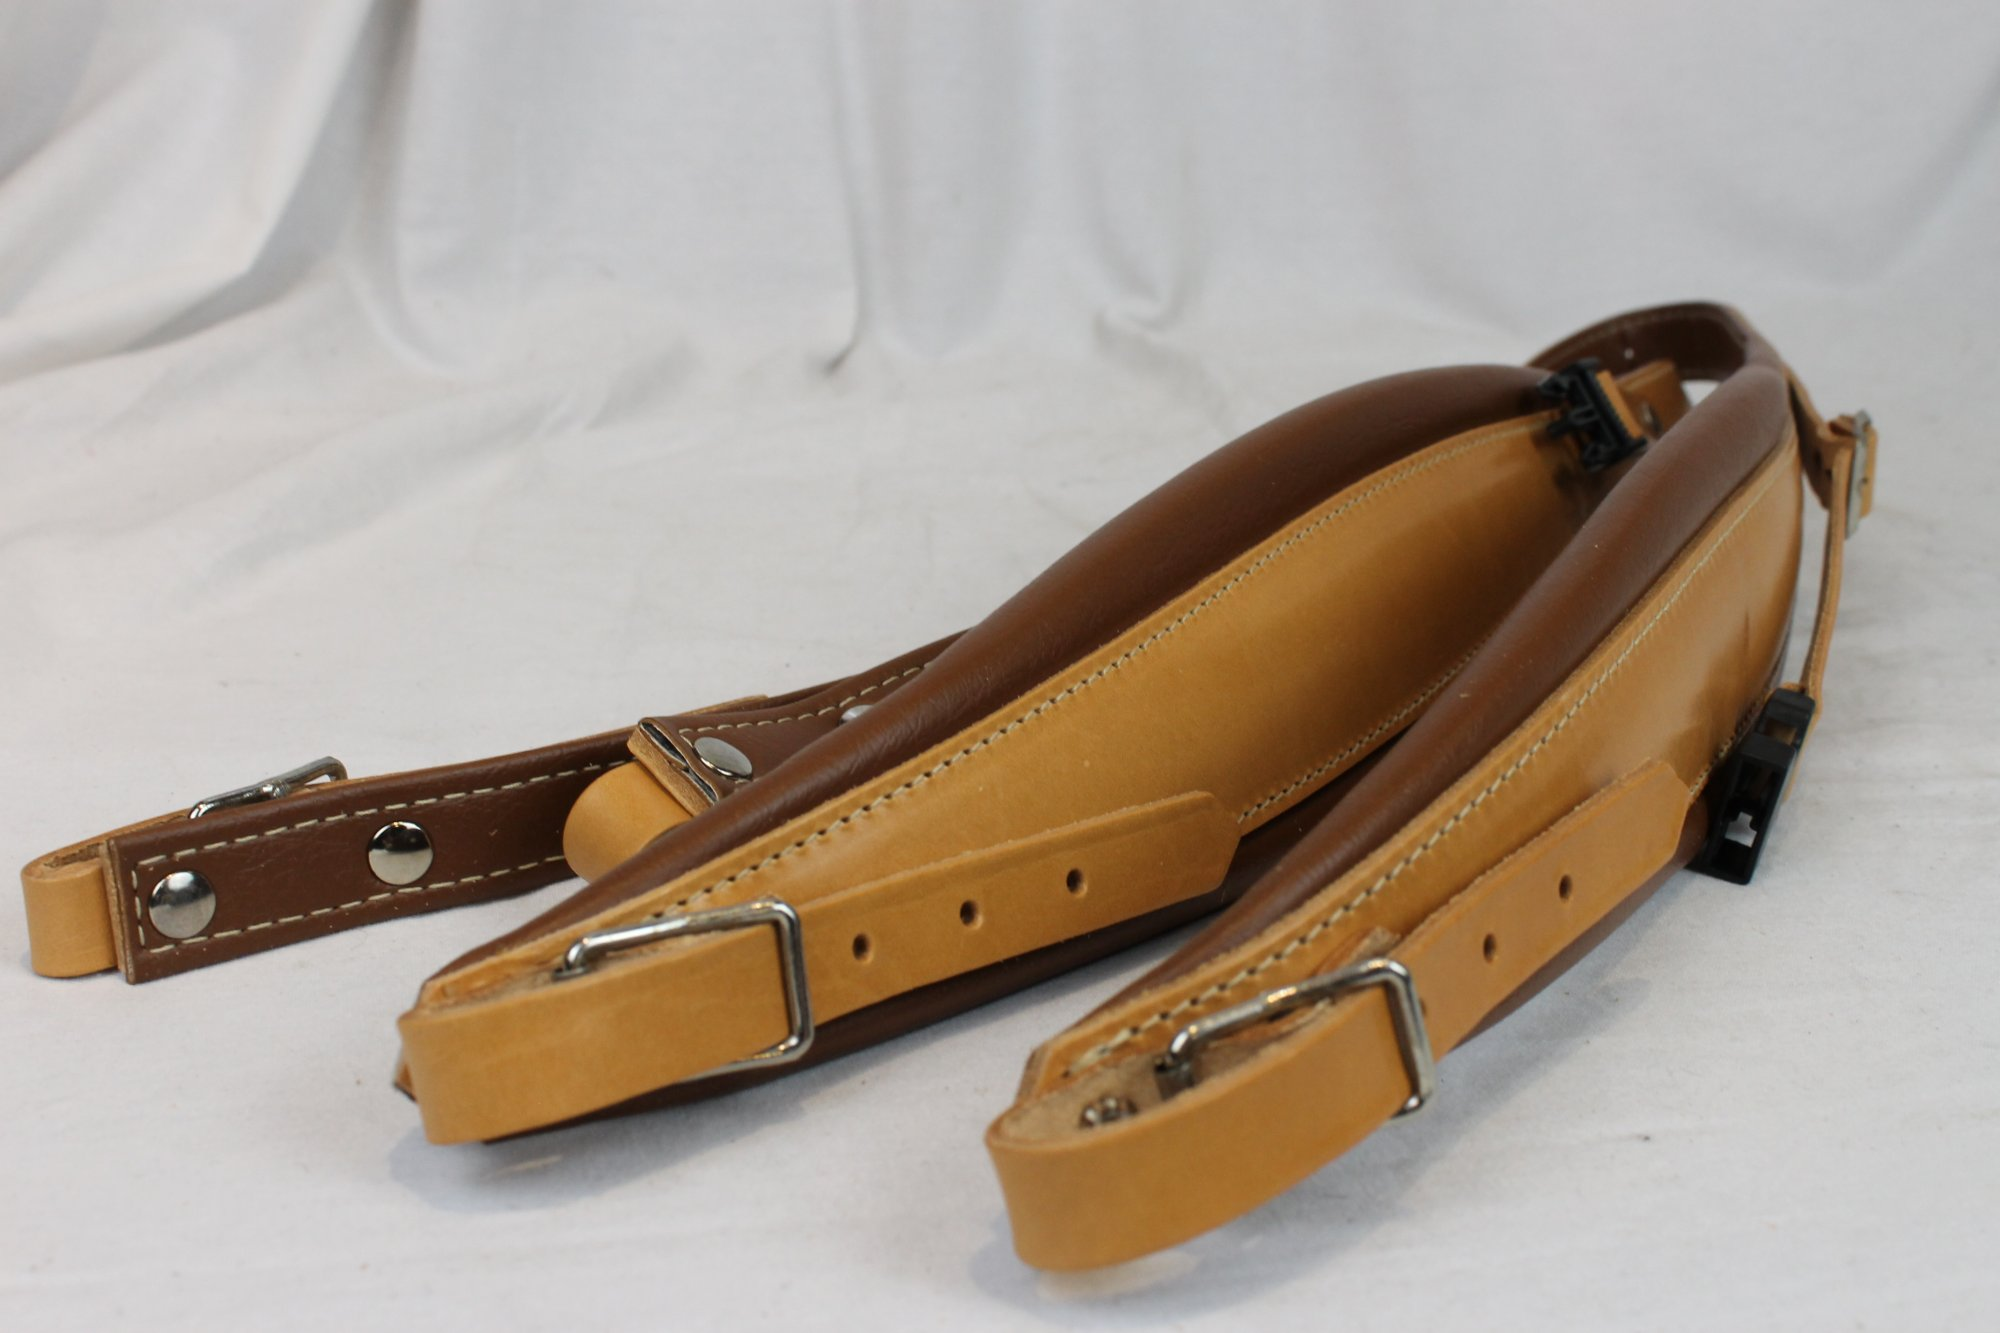 NEW Tan Leather Fuselli Accordion Shoulder Straps With Back Straps Width (9cm / 3.5 inch) Length (105cm-123cm / 41.3-48.4 inch)